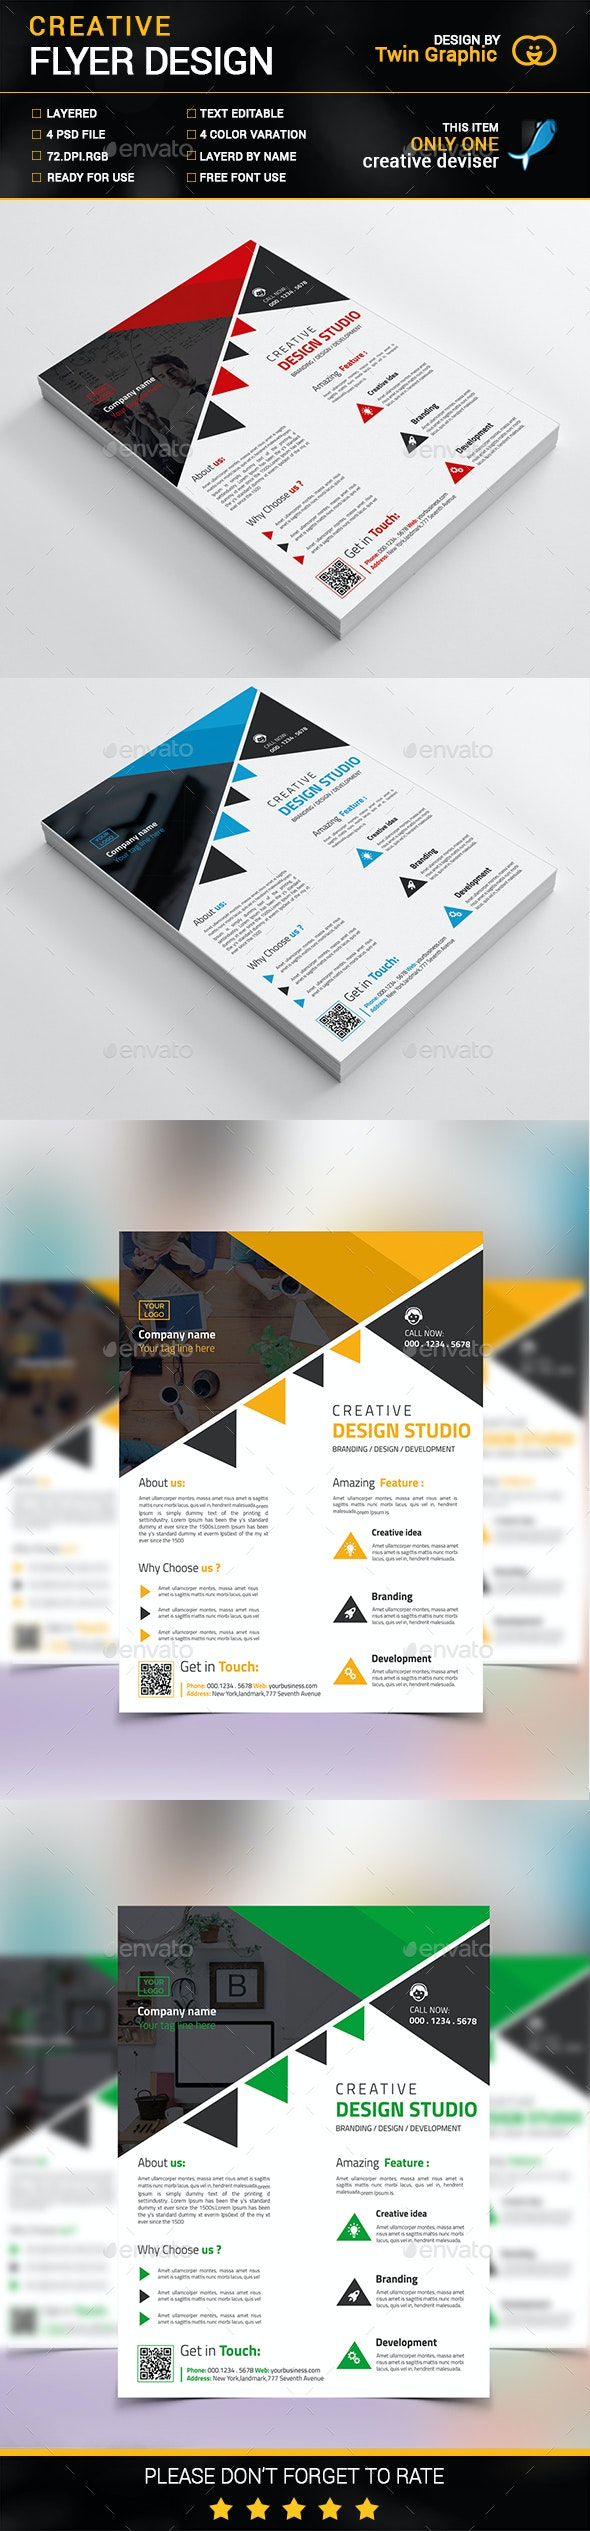 Creative Flyer Design - Corporate Flyers